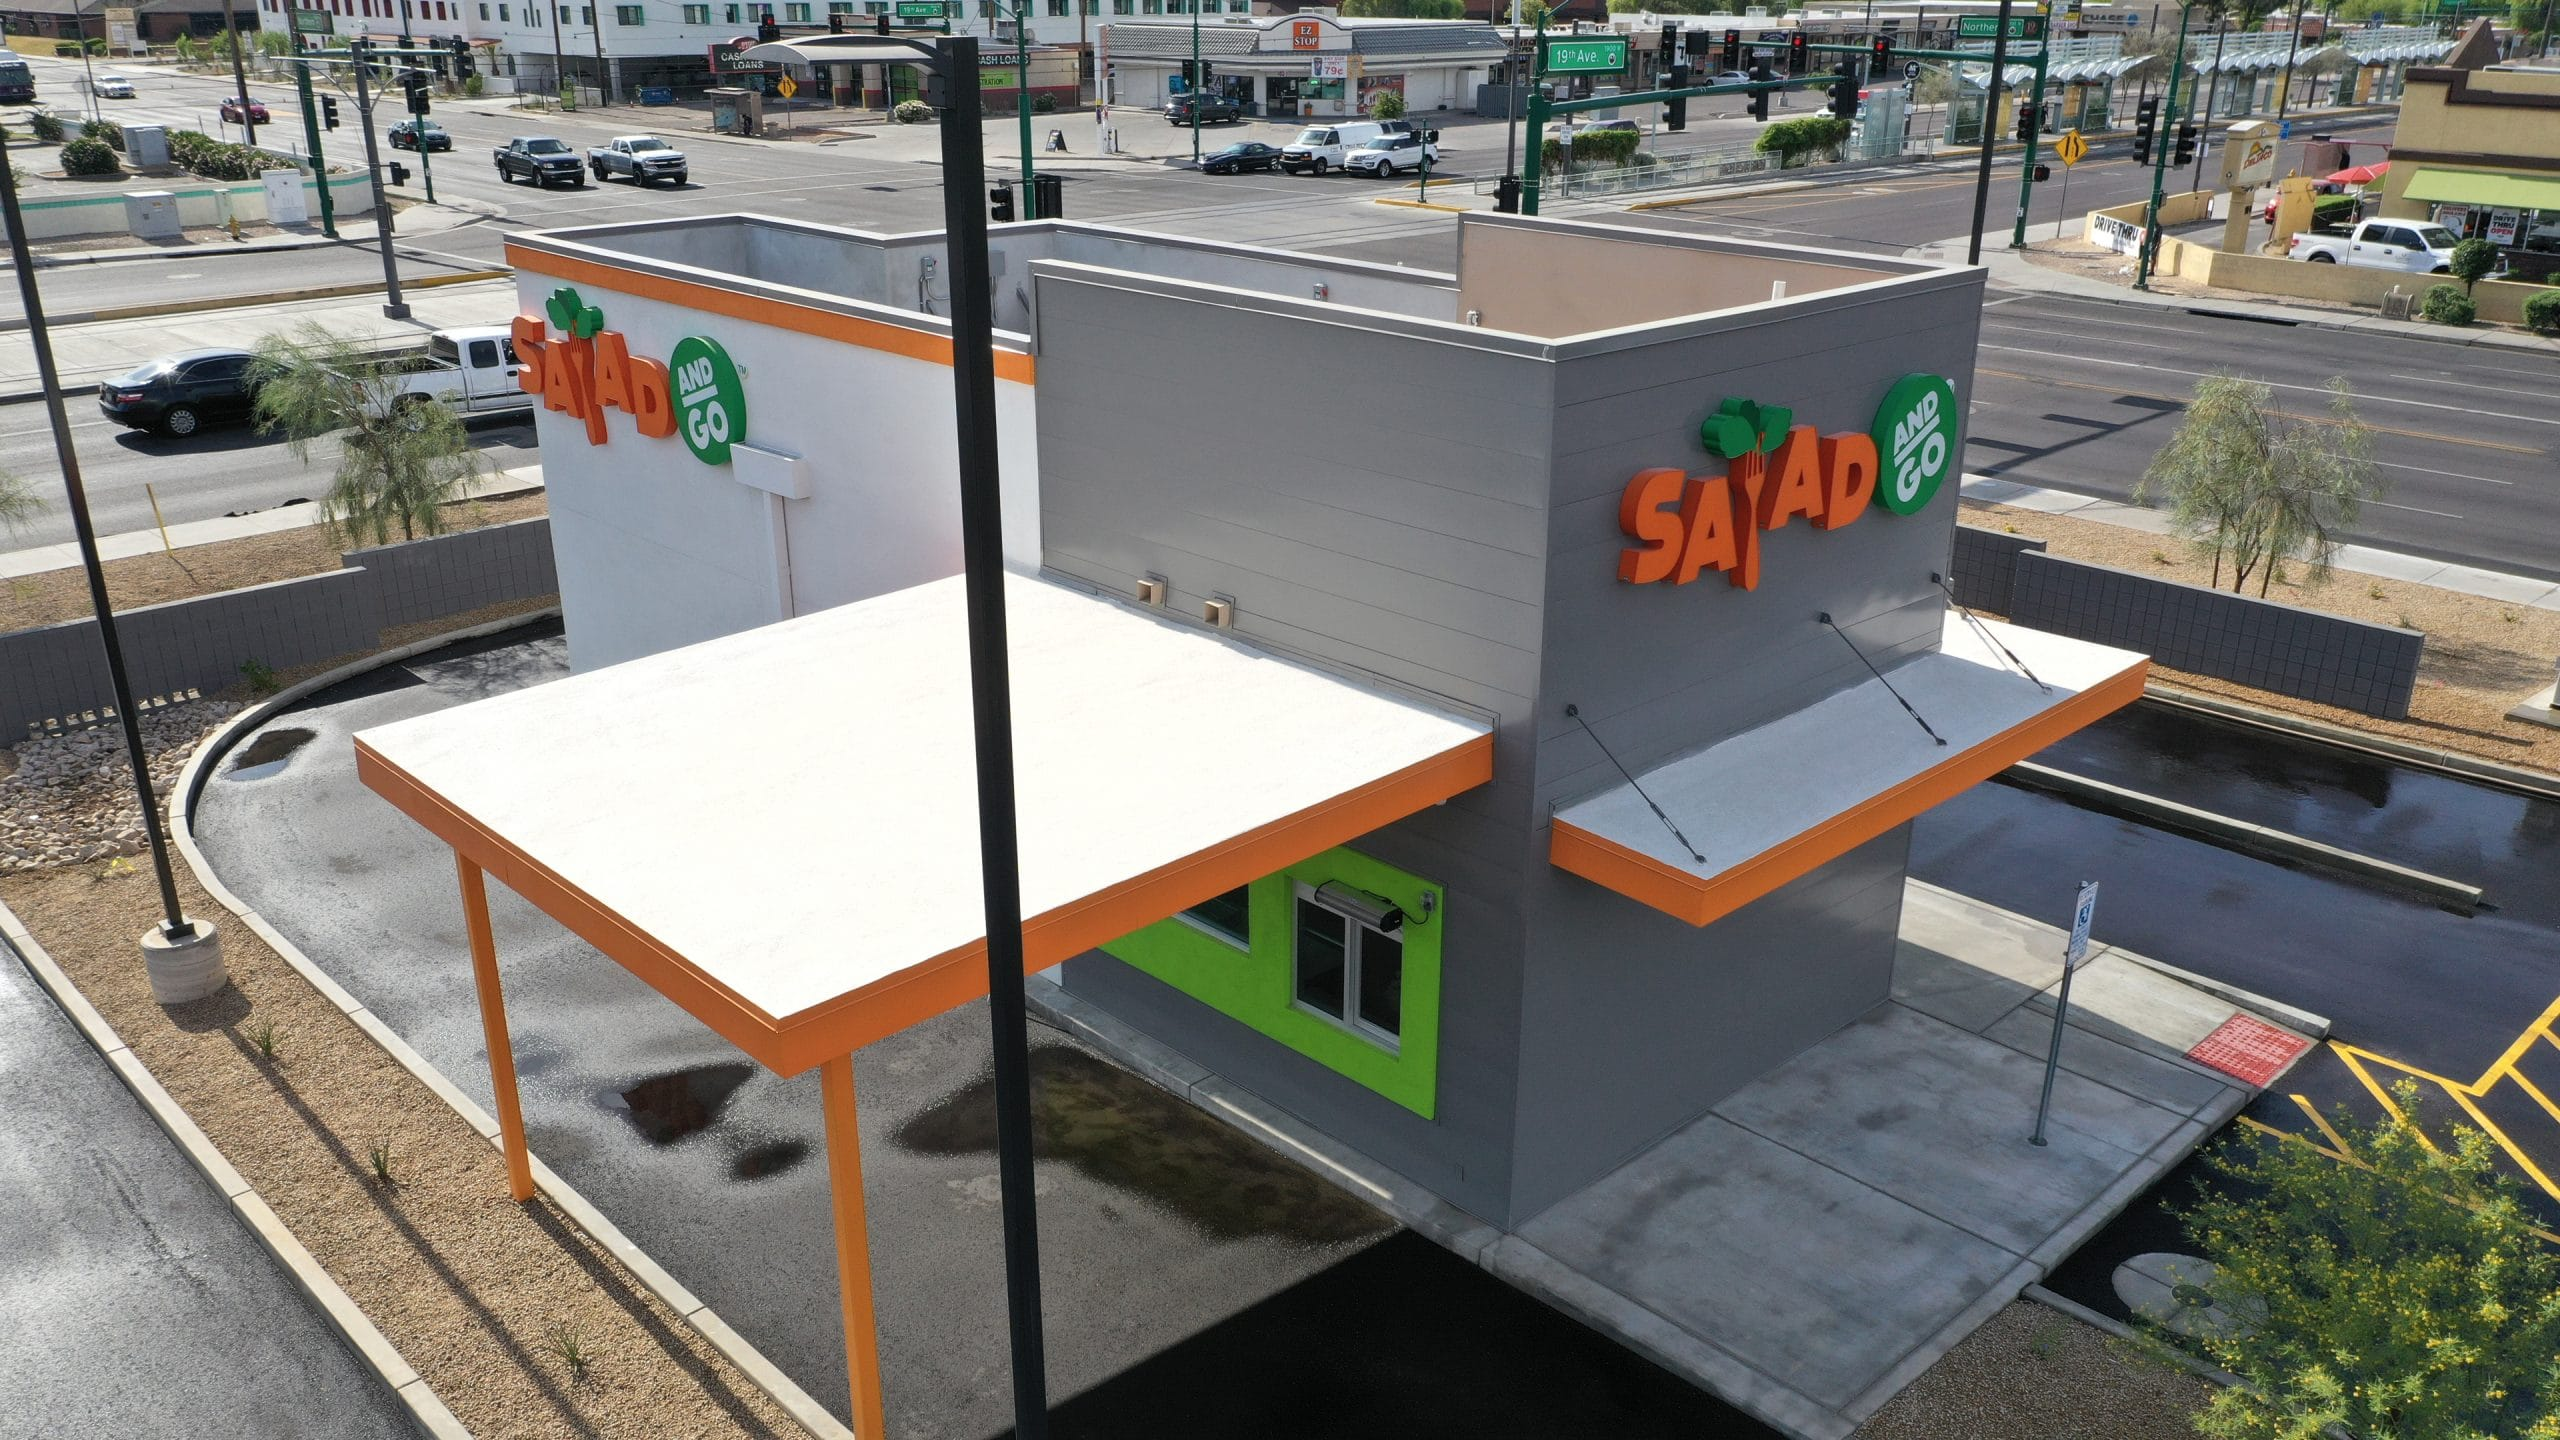 salad and go phoenix arizona construction